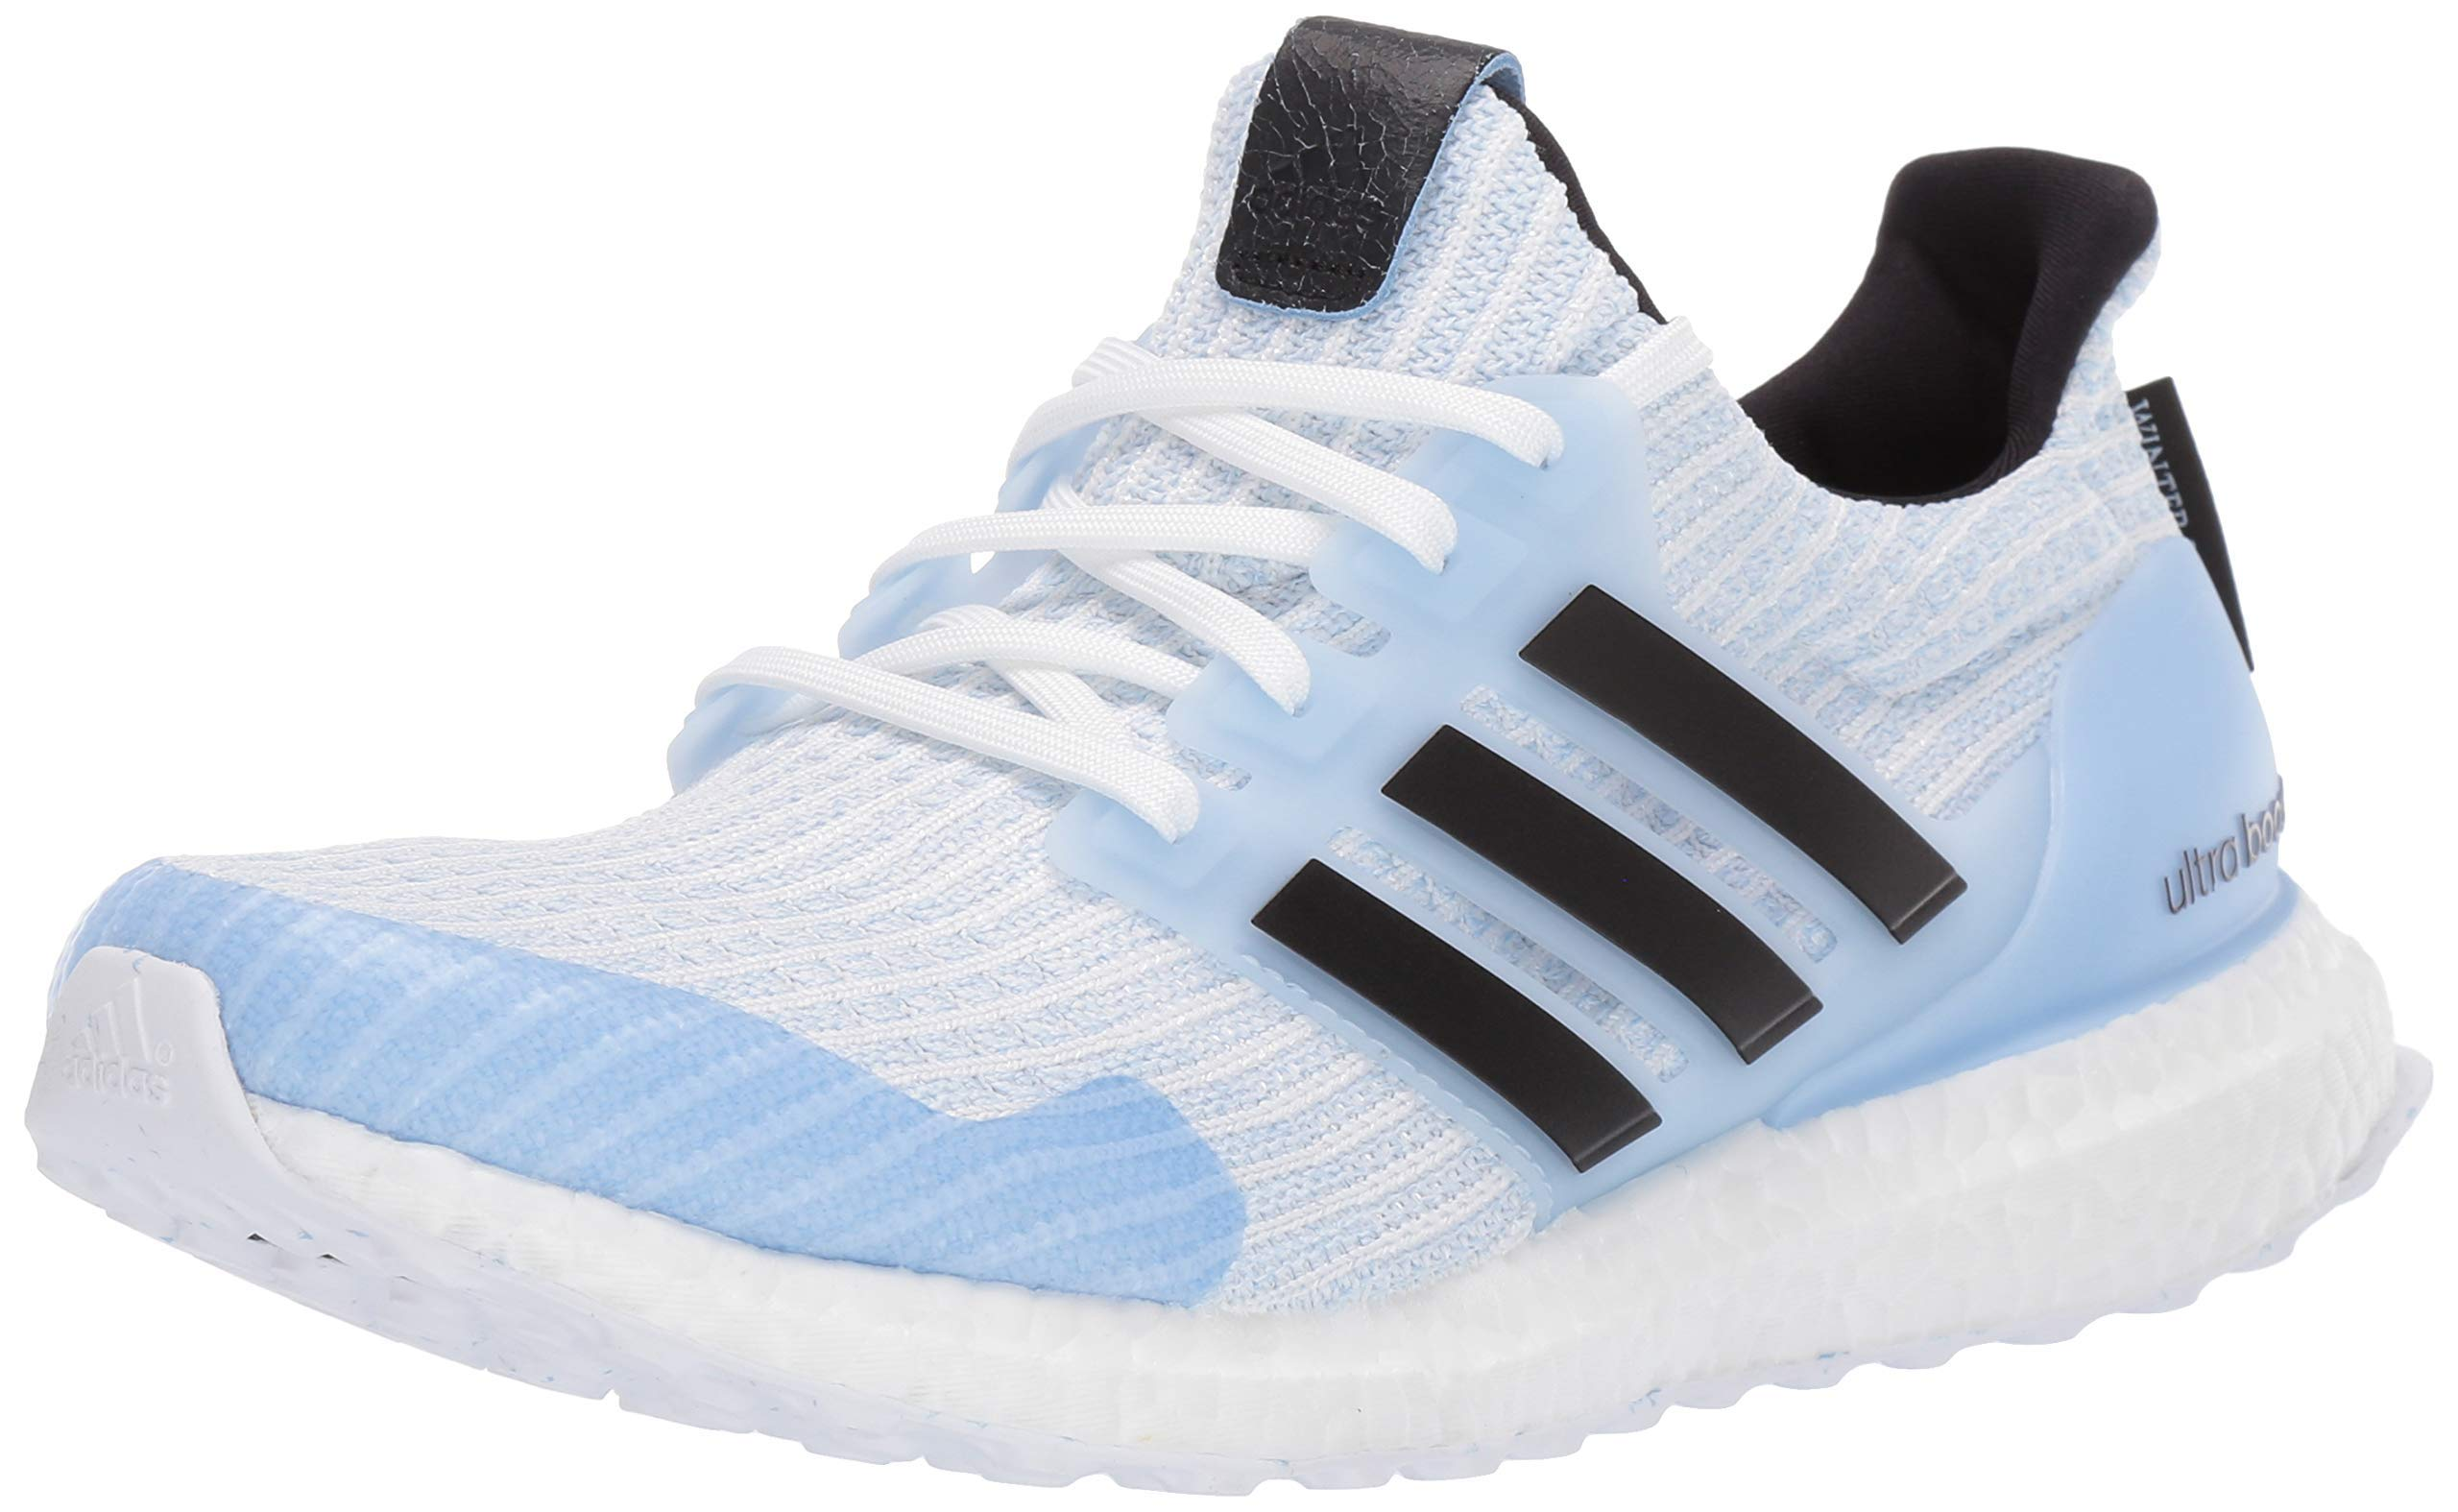 adidas x Game of Thrones Men's Ultraboost Running Shoes, White Walker, 8.5 M US